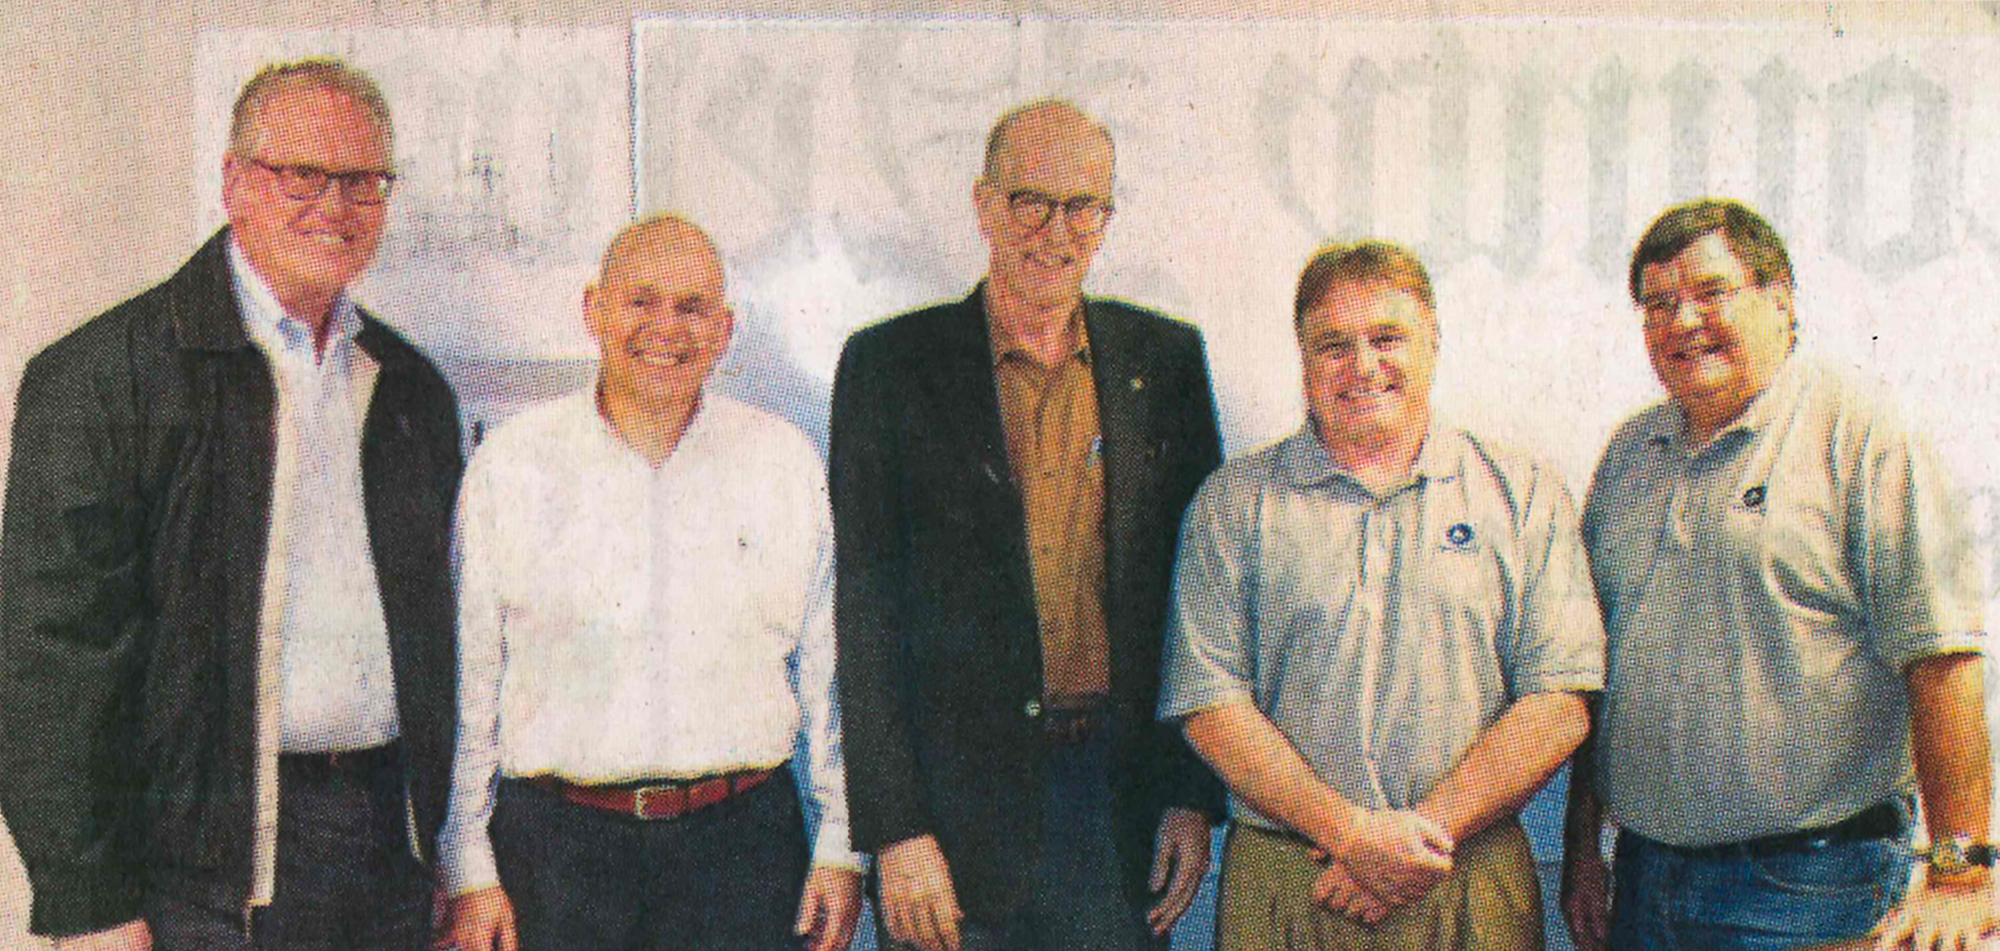 From left to right, Bill Johnson, CEO of TVA; Braulio Late, VP, Polymet Alloys and Mississippi Silicon Board of Directors; Richard Howorth, TVA Board Chair; Eddie Broadwine, COO, Mississippi Silicon; and John Lalley, CFO, Mississippi Silicon.